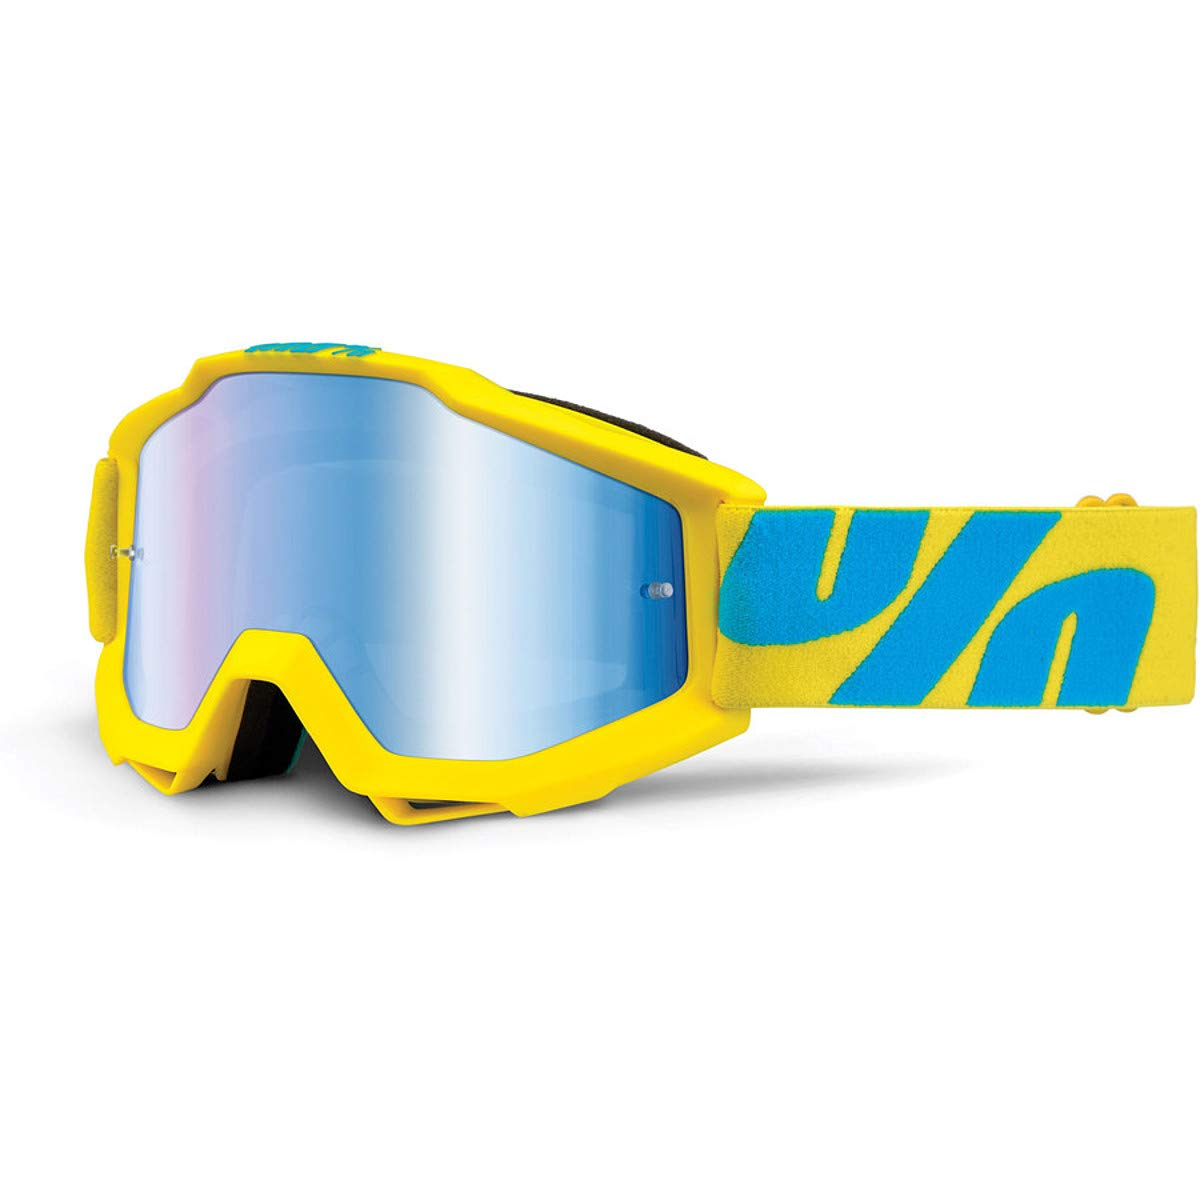 100% Accuri Adult Off-Road Motorcycle Goggles - Fiji/Mirror Blue Lens/One Size